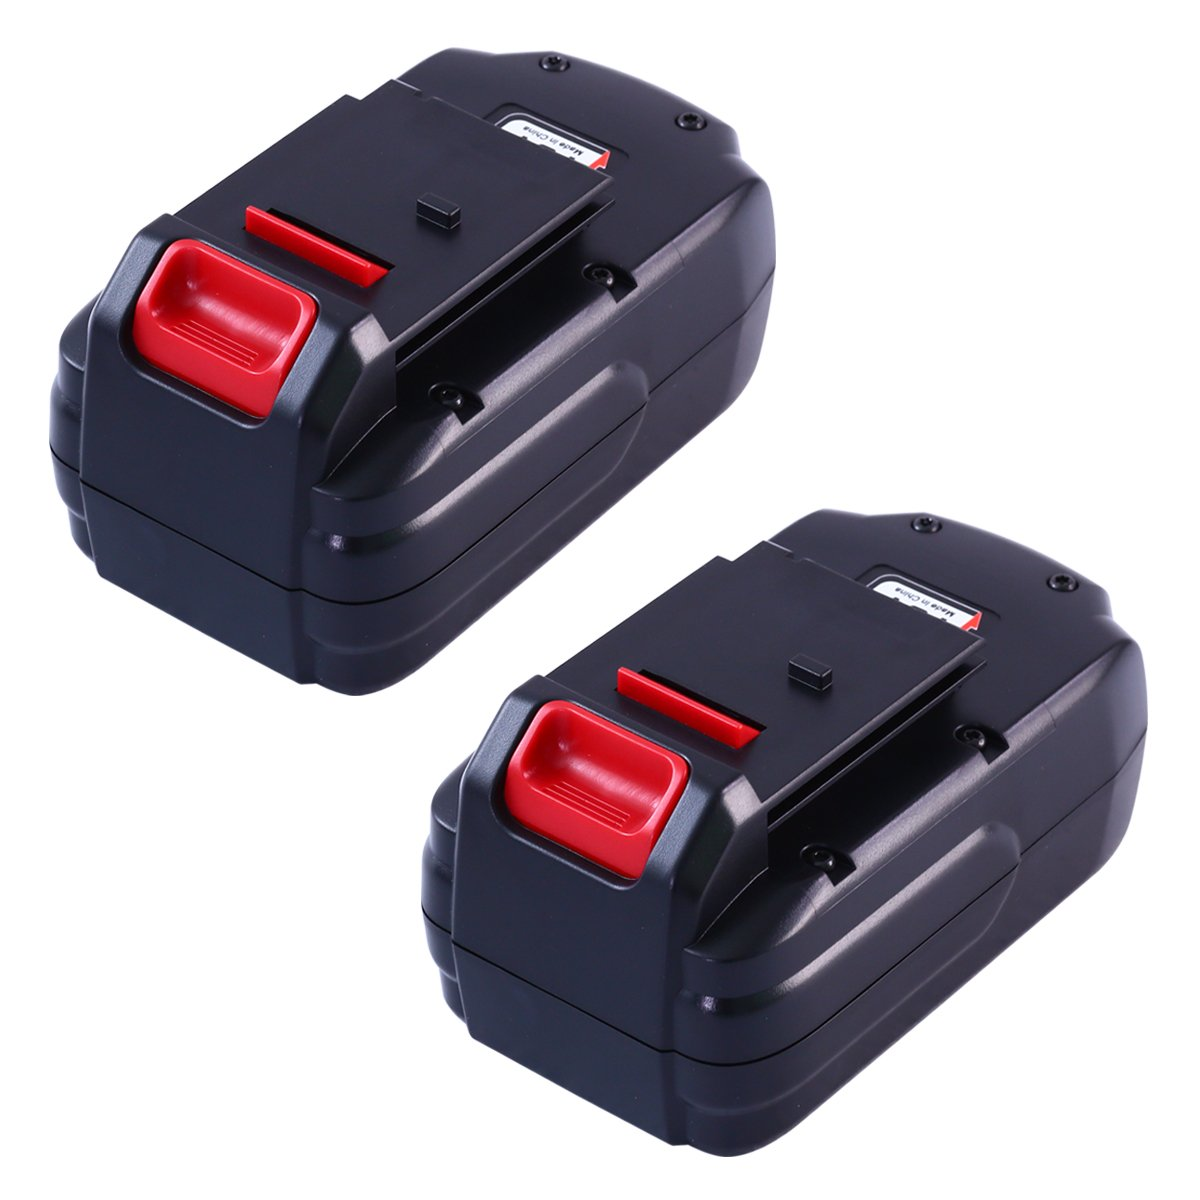 Boetpcr 2pack Pc18b Replacement For Porter Cable 18v Battery 3 0ah